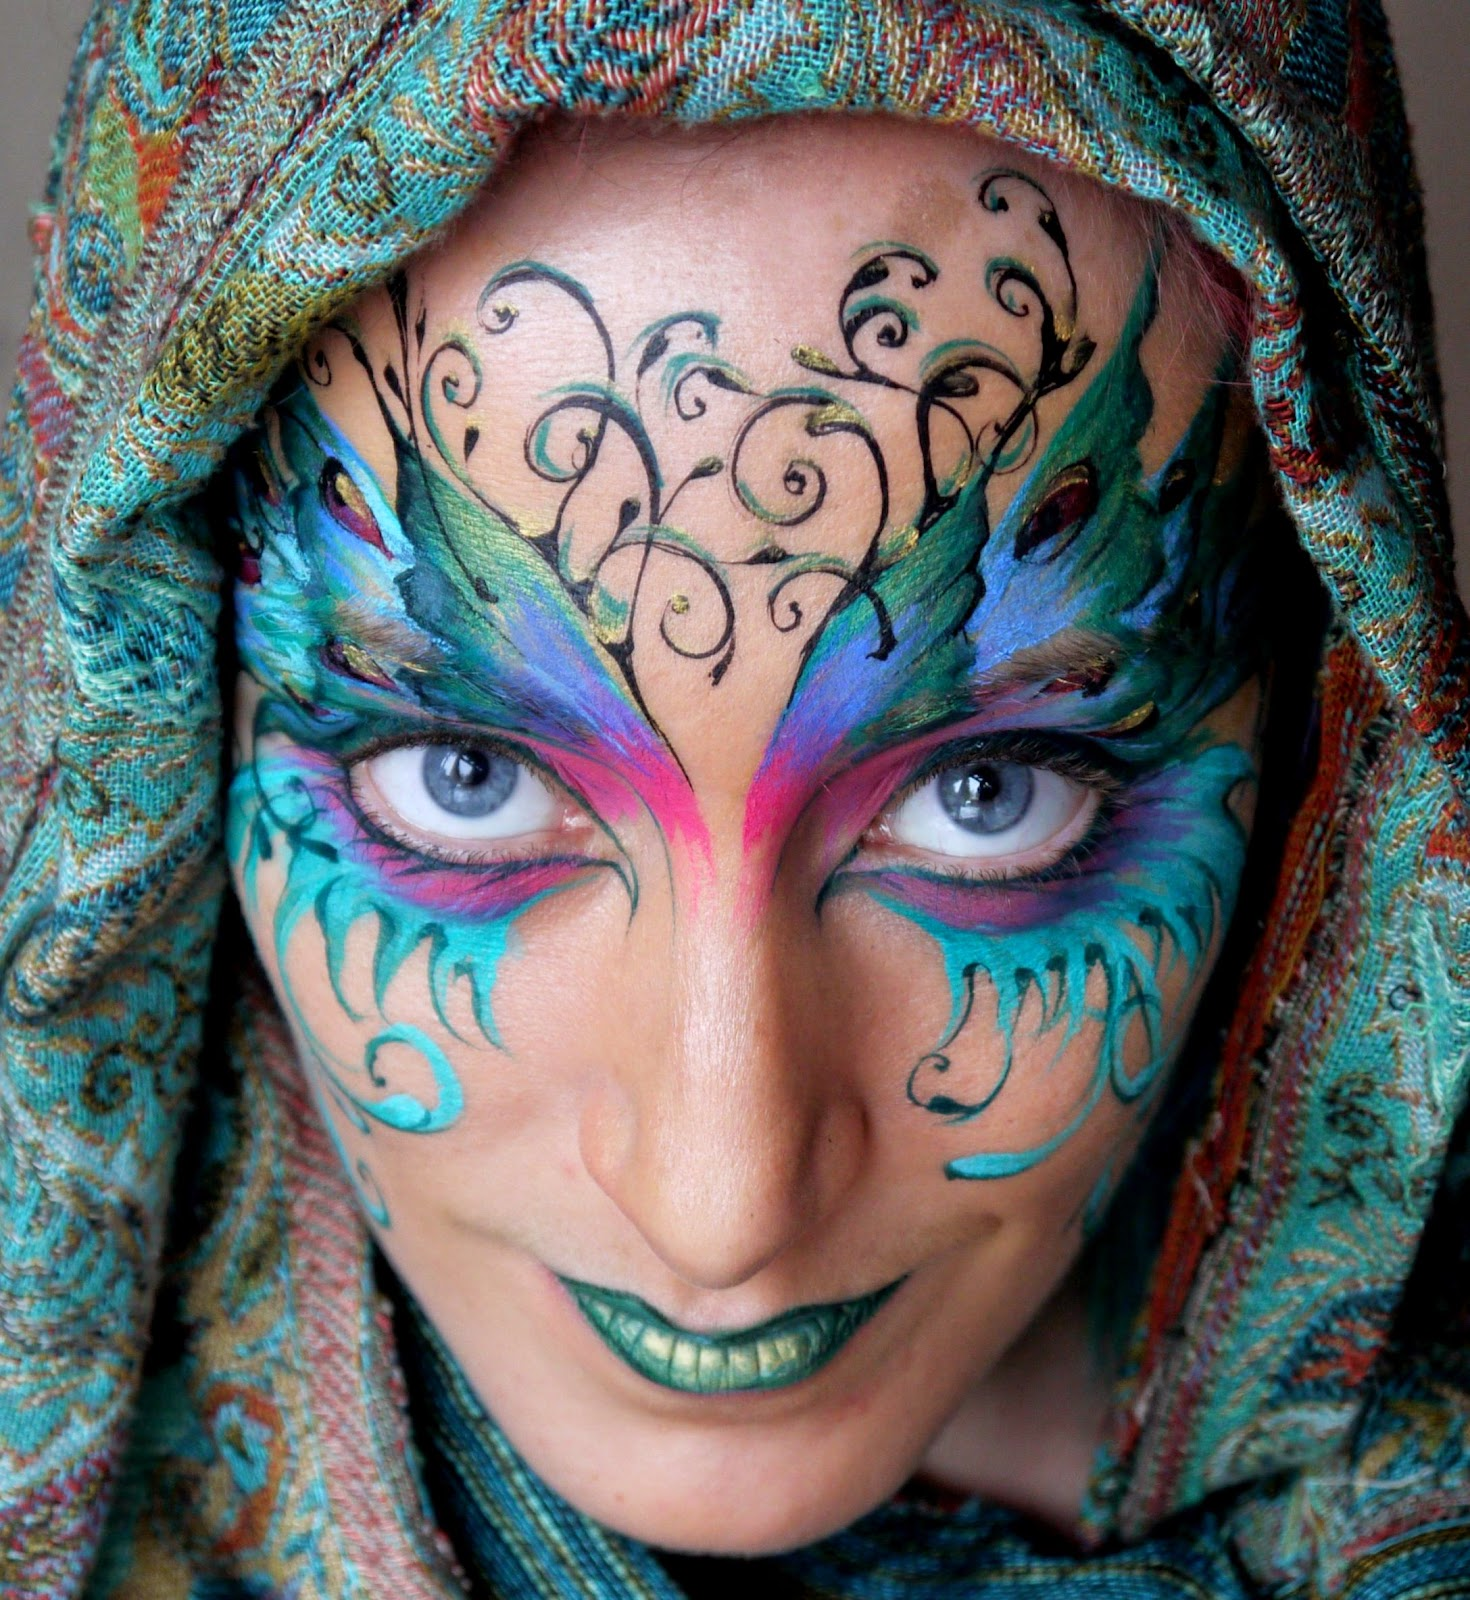 Facade Academy  of face amp body art